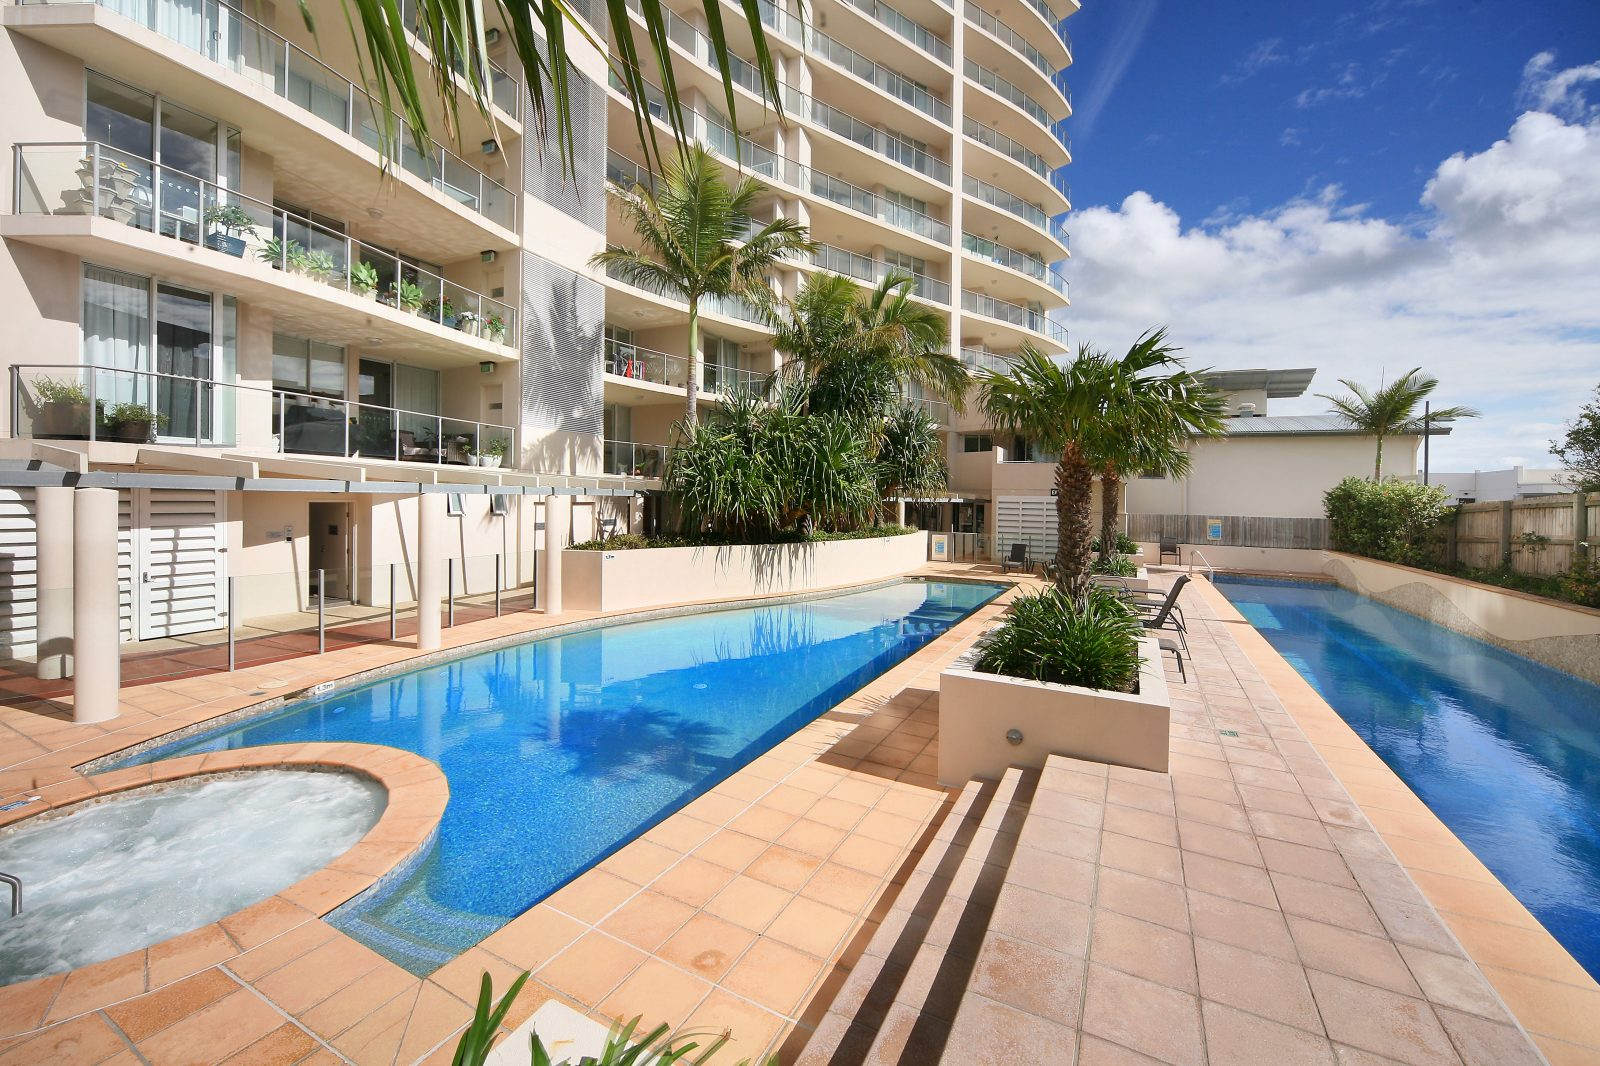 Aspect Caloundra, Sunshine Coast, Queensland, Heated Pools, Heated Spa